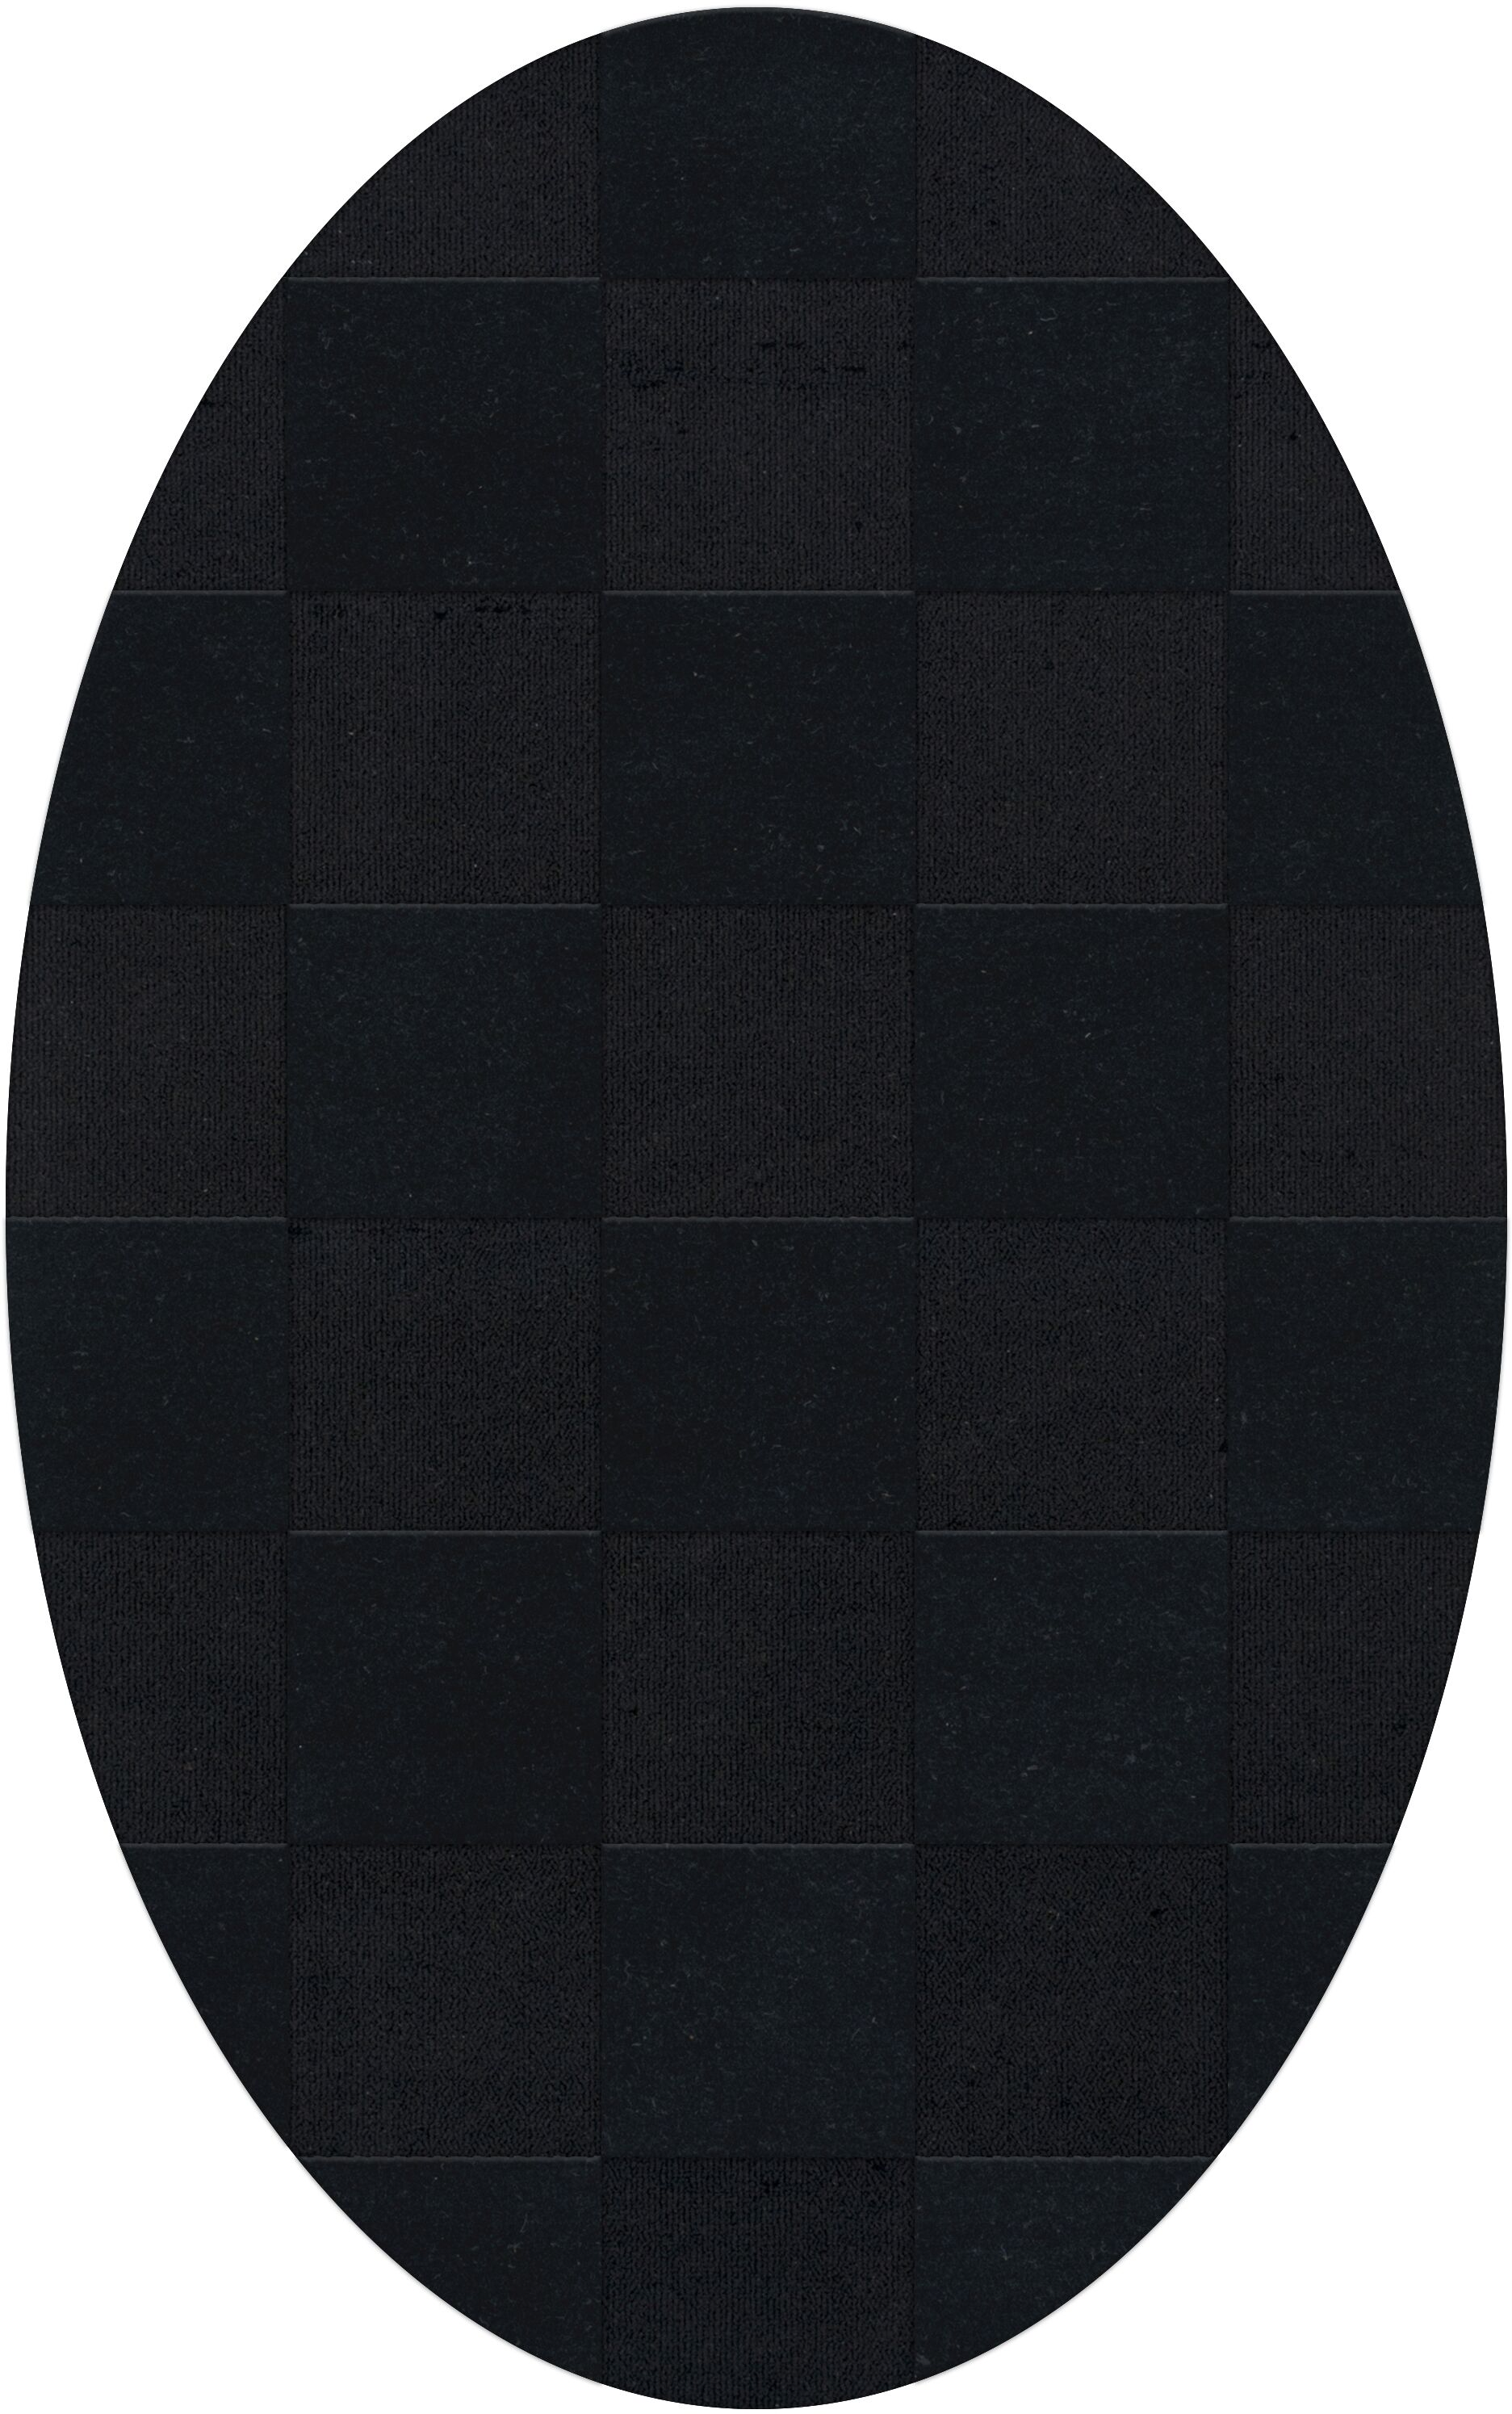 Dover Tufted Wool Black Area Rug Rug Size: Oval 3' x 5'